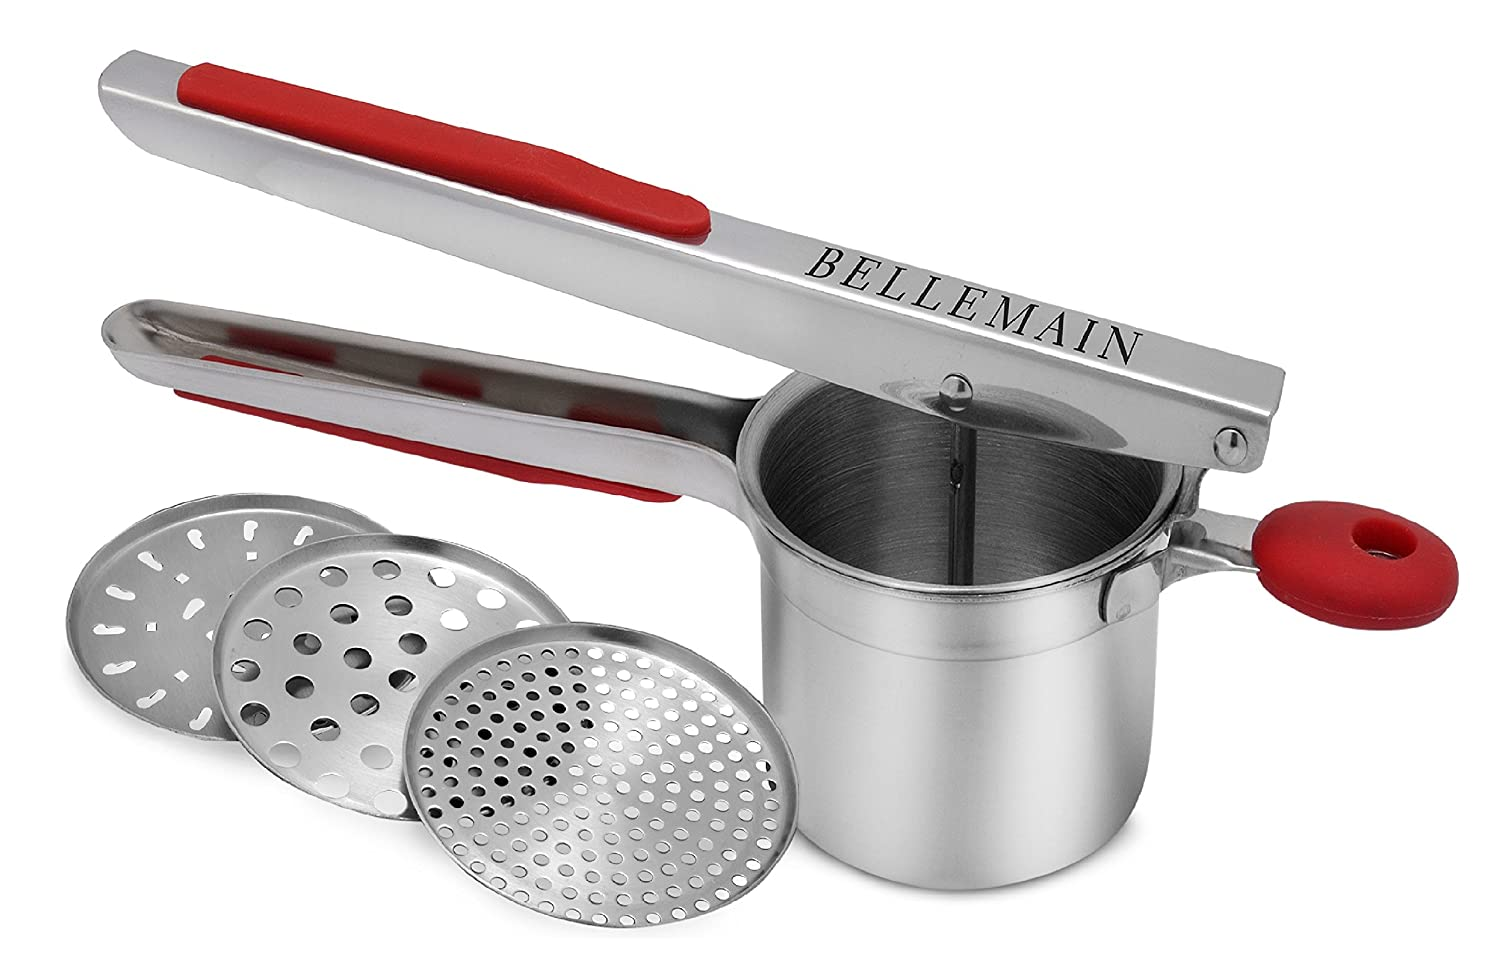 Bellemain Stainless Steel Potato Ricer